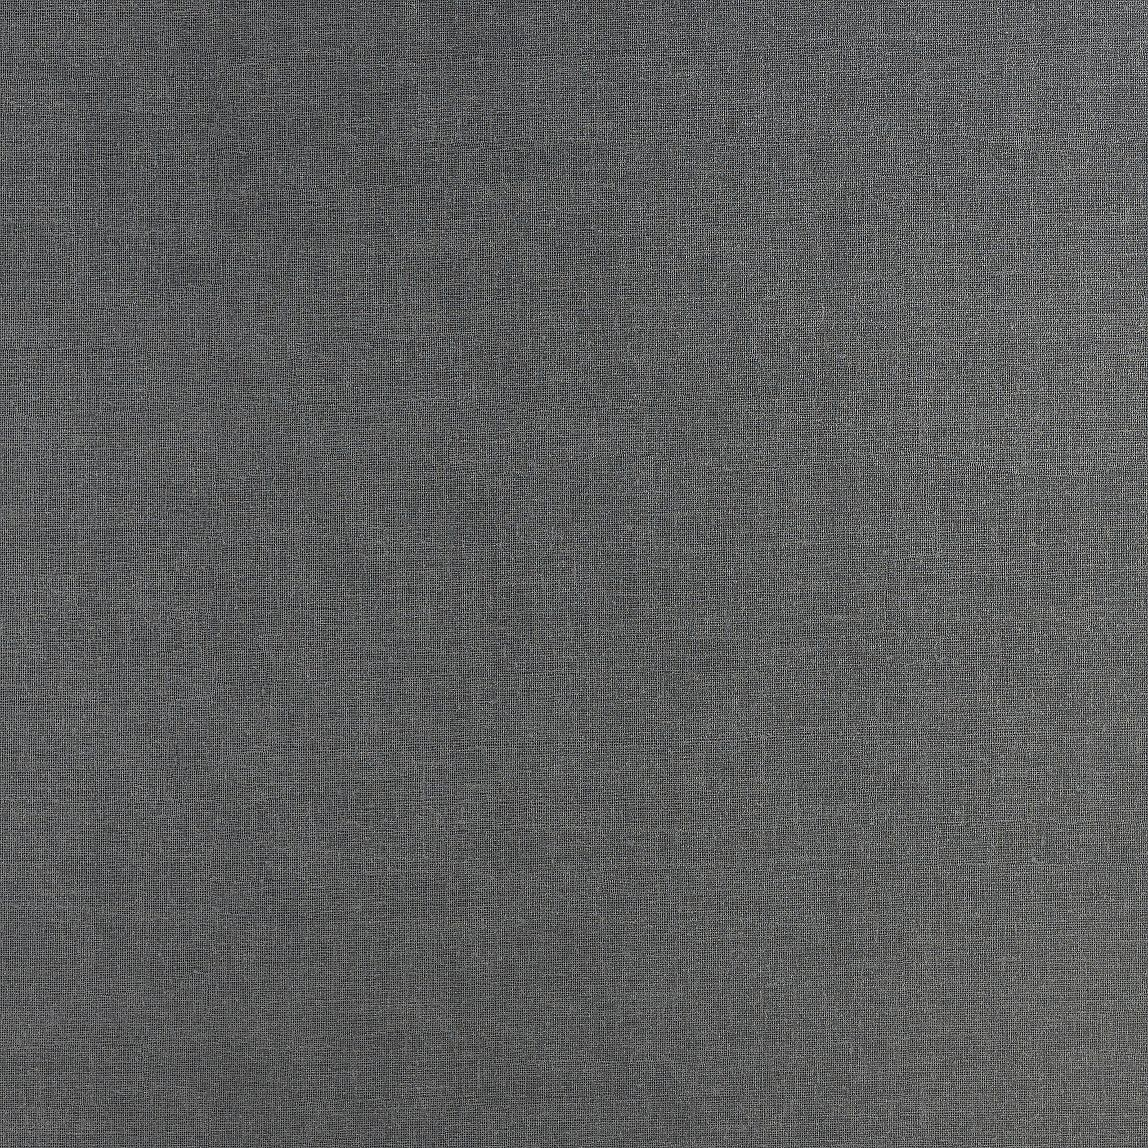 Shantung  Graphite Swatch